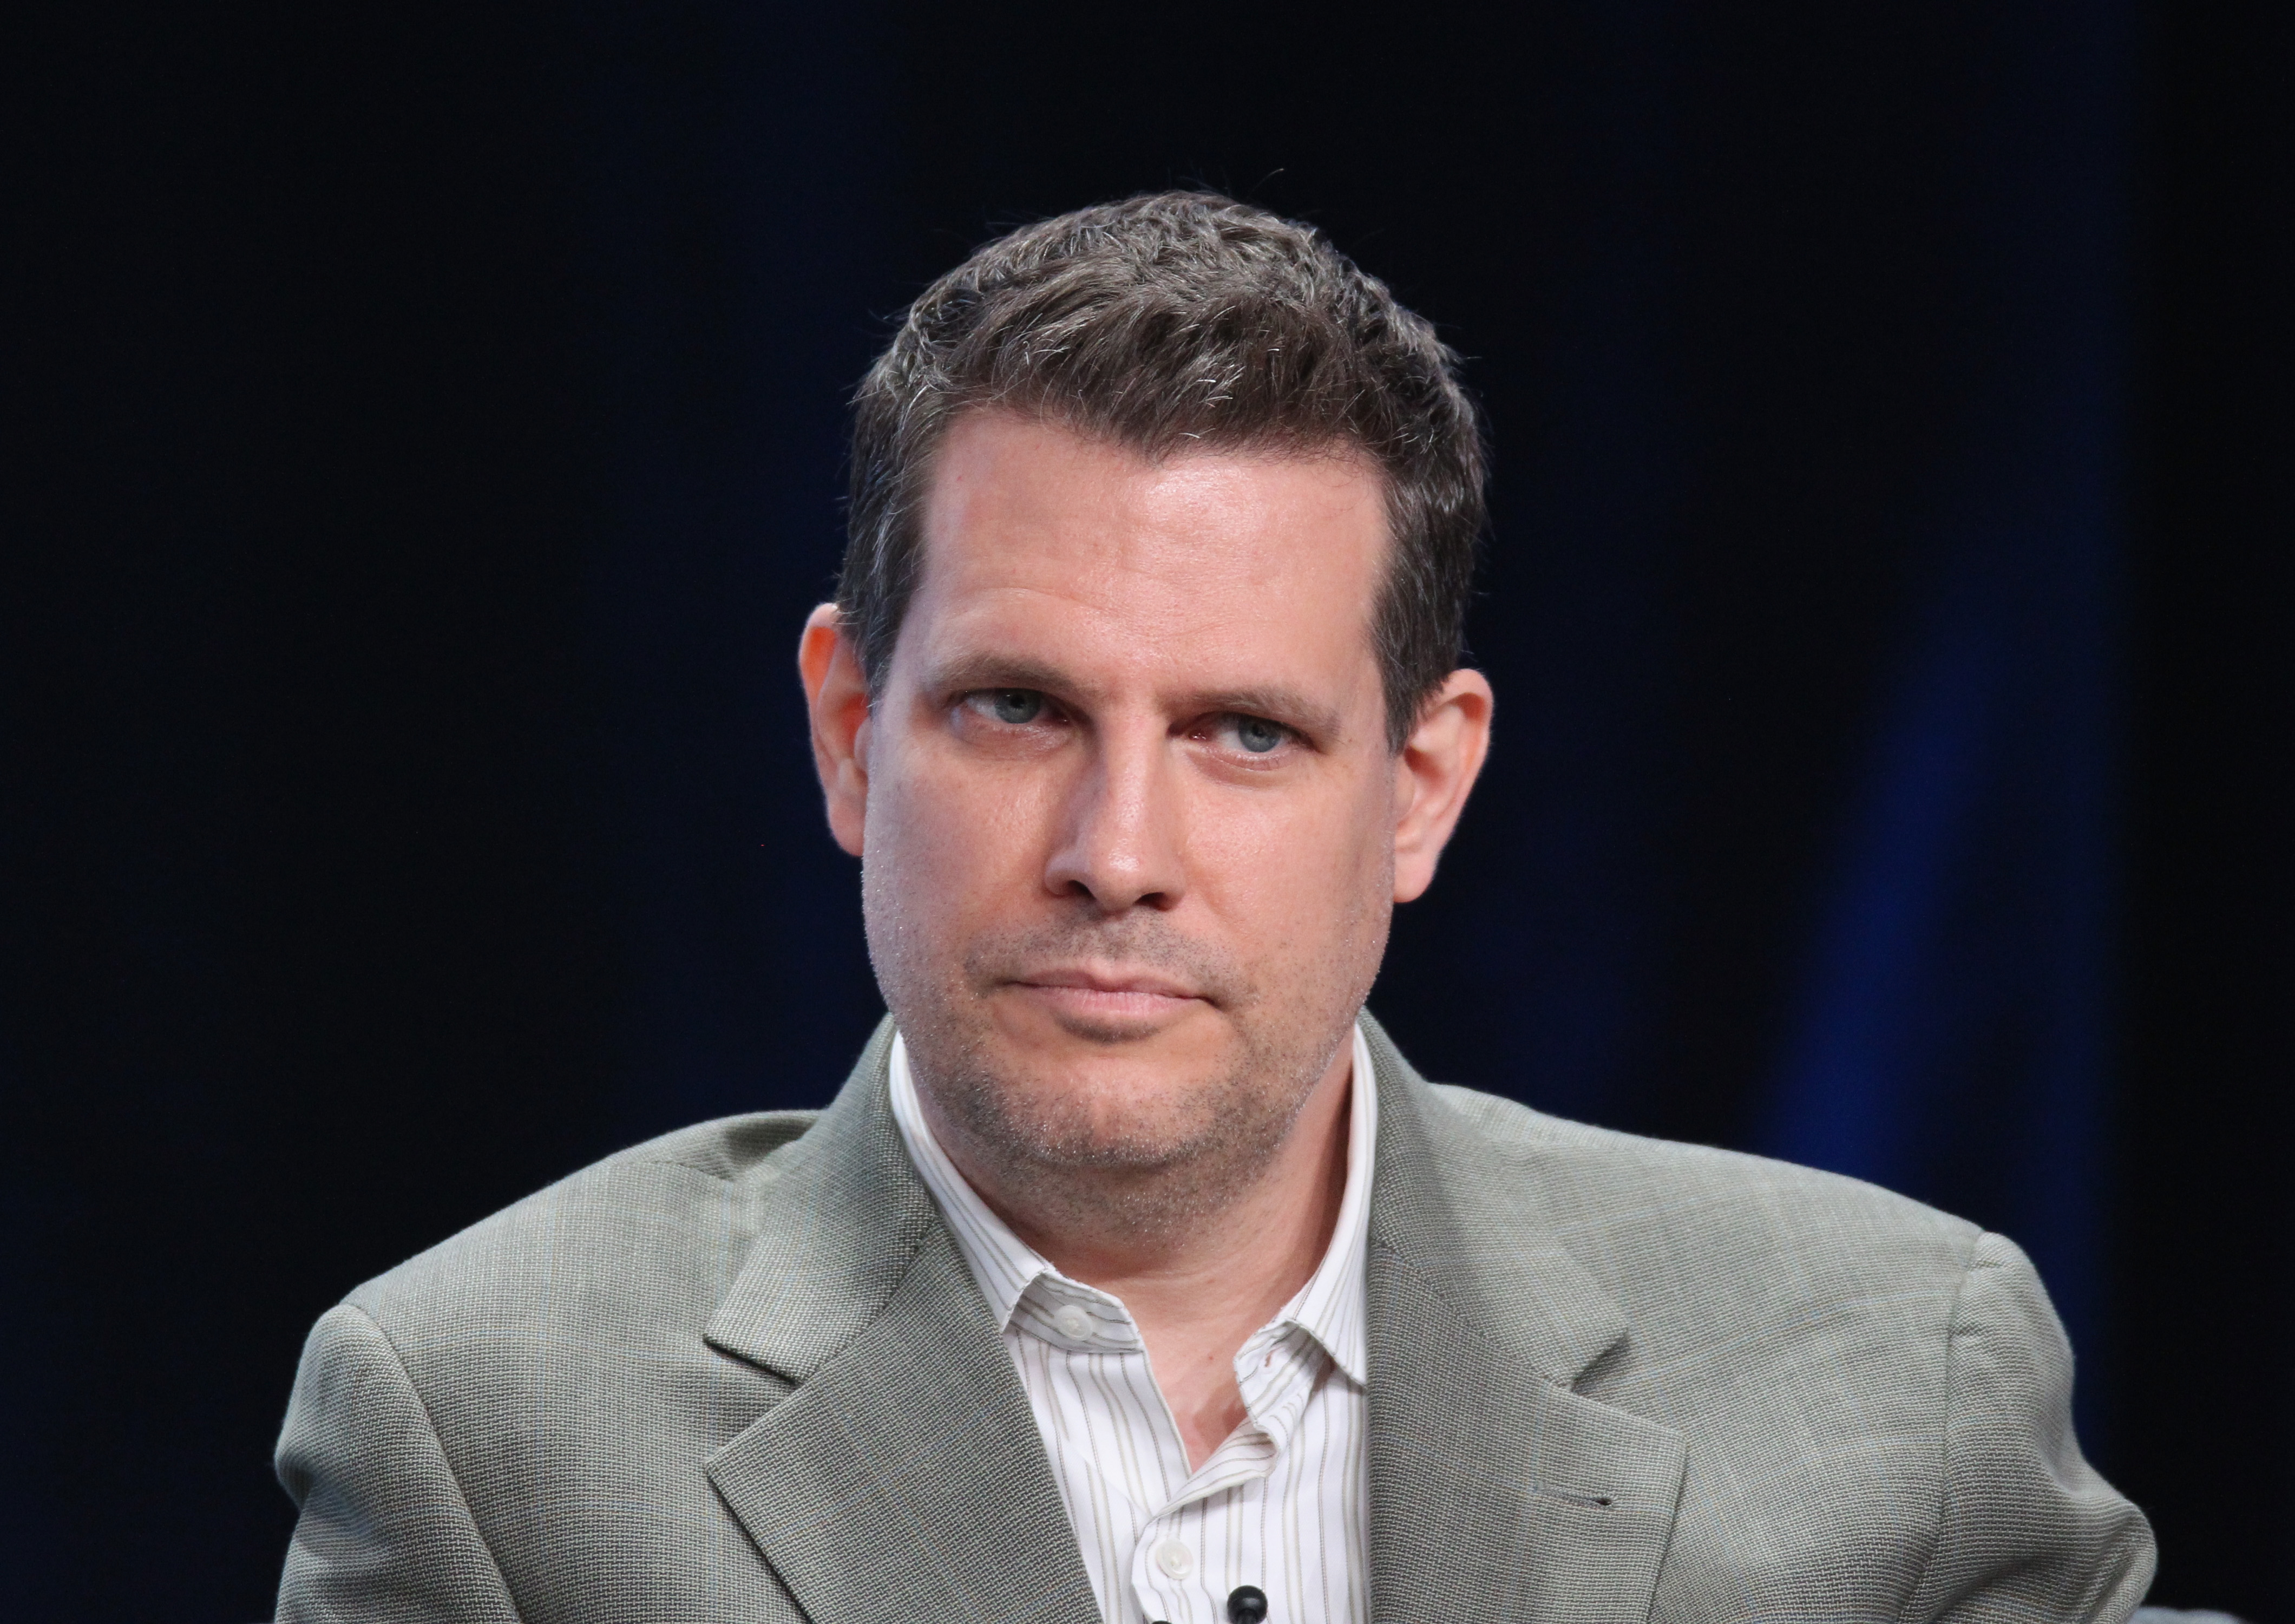 Executive producer Garrett Donovan spoke about the show during the conference.